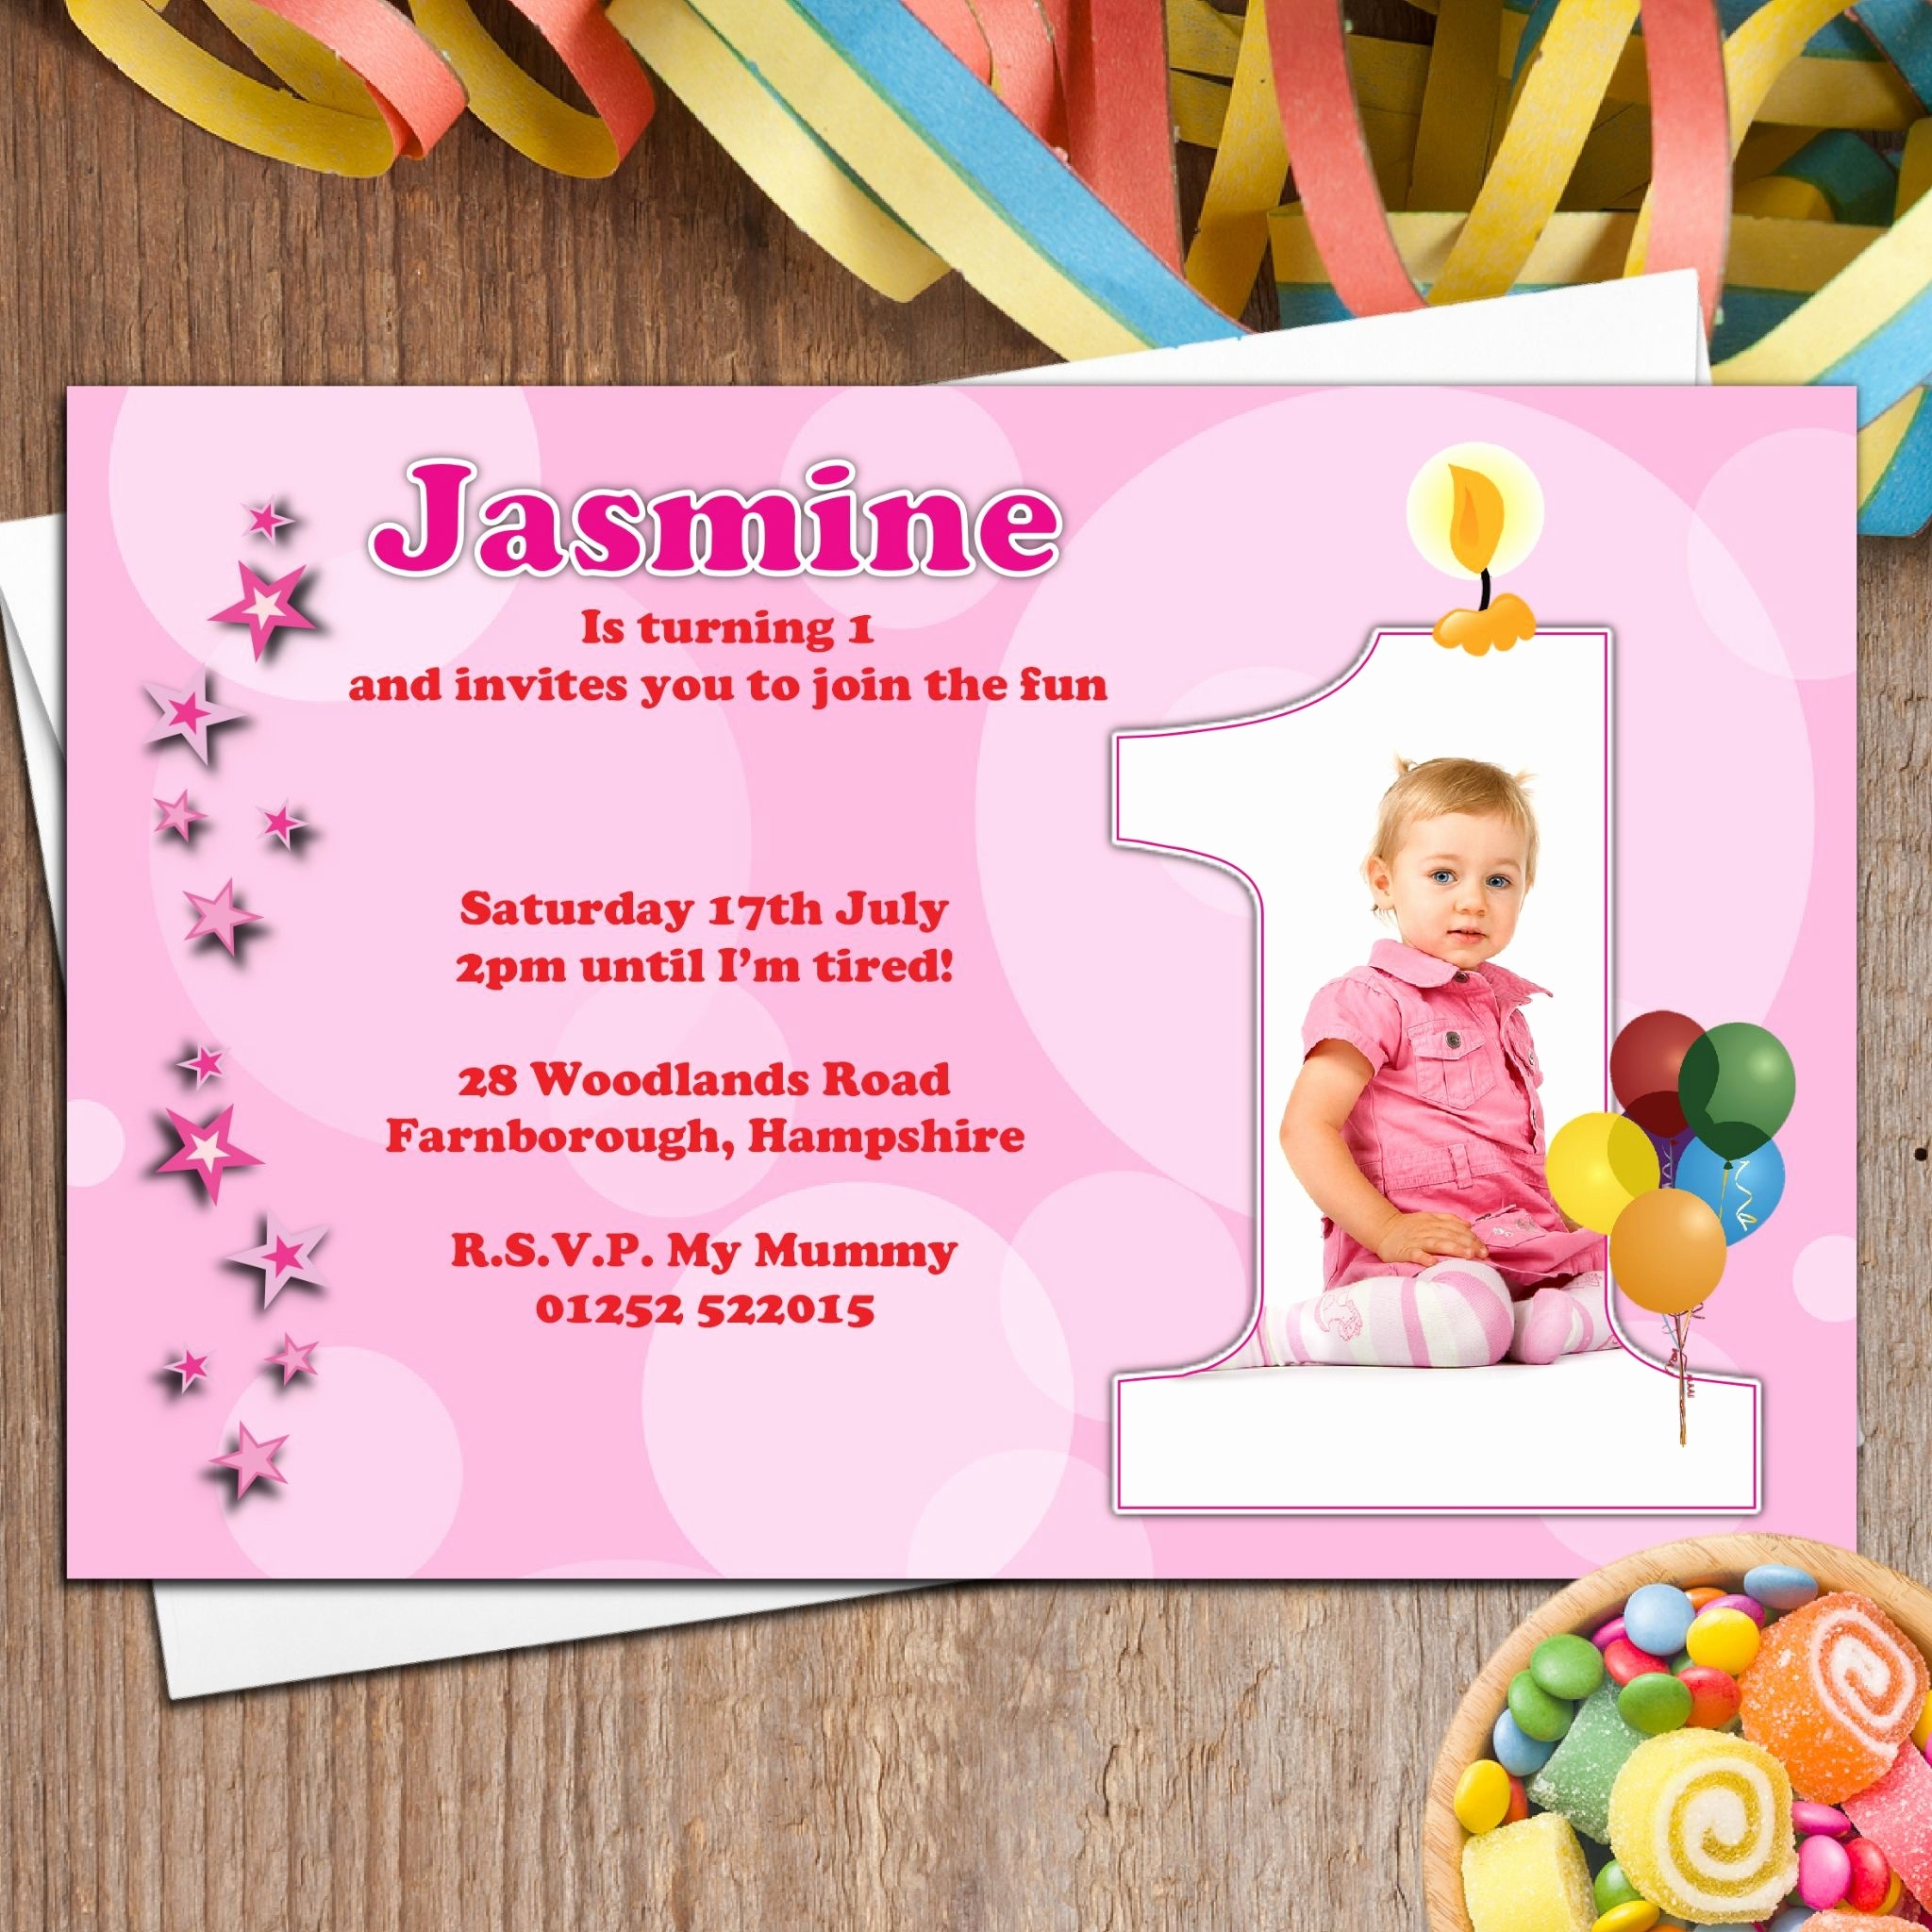 1st birthday invitation cards in telugu ; invitation-cards-for-1st-birthday-in-telugu-refrence-birthday-card-matter-lovely-birthday-invitation-cards-matter-in-of-invitation-cards-for-1st-birthday-in-telugu